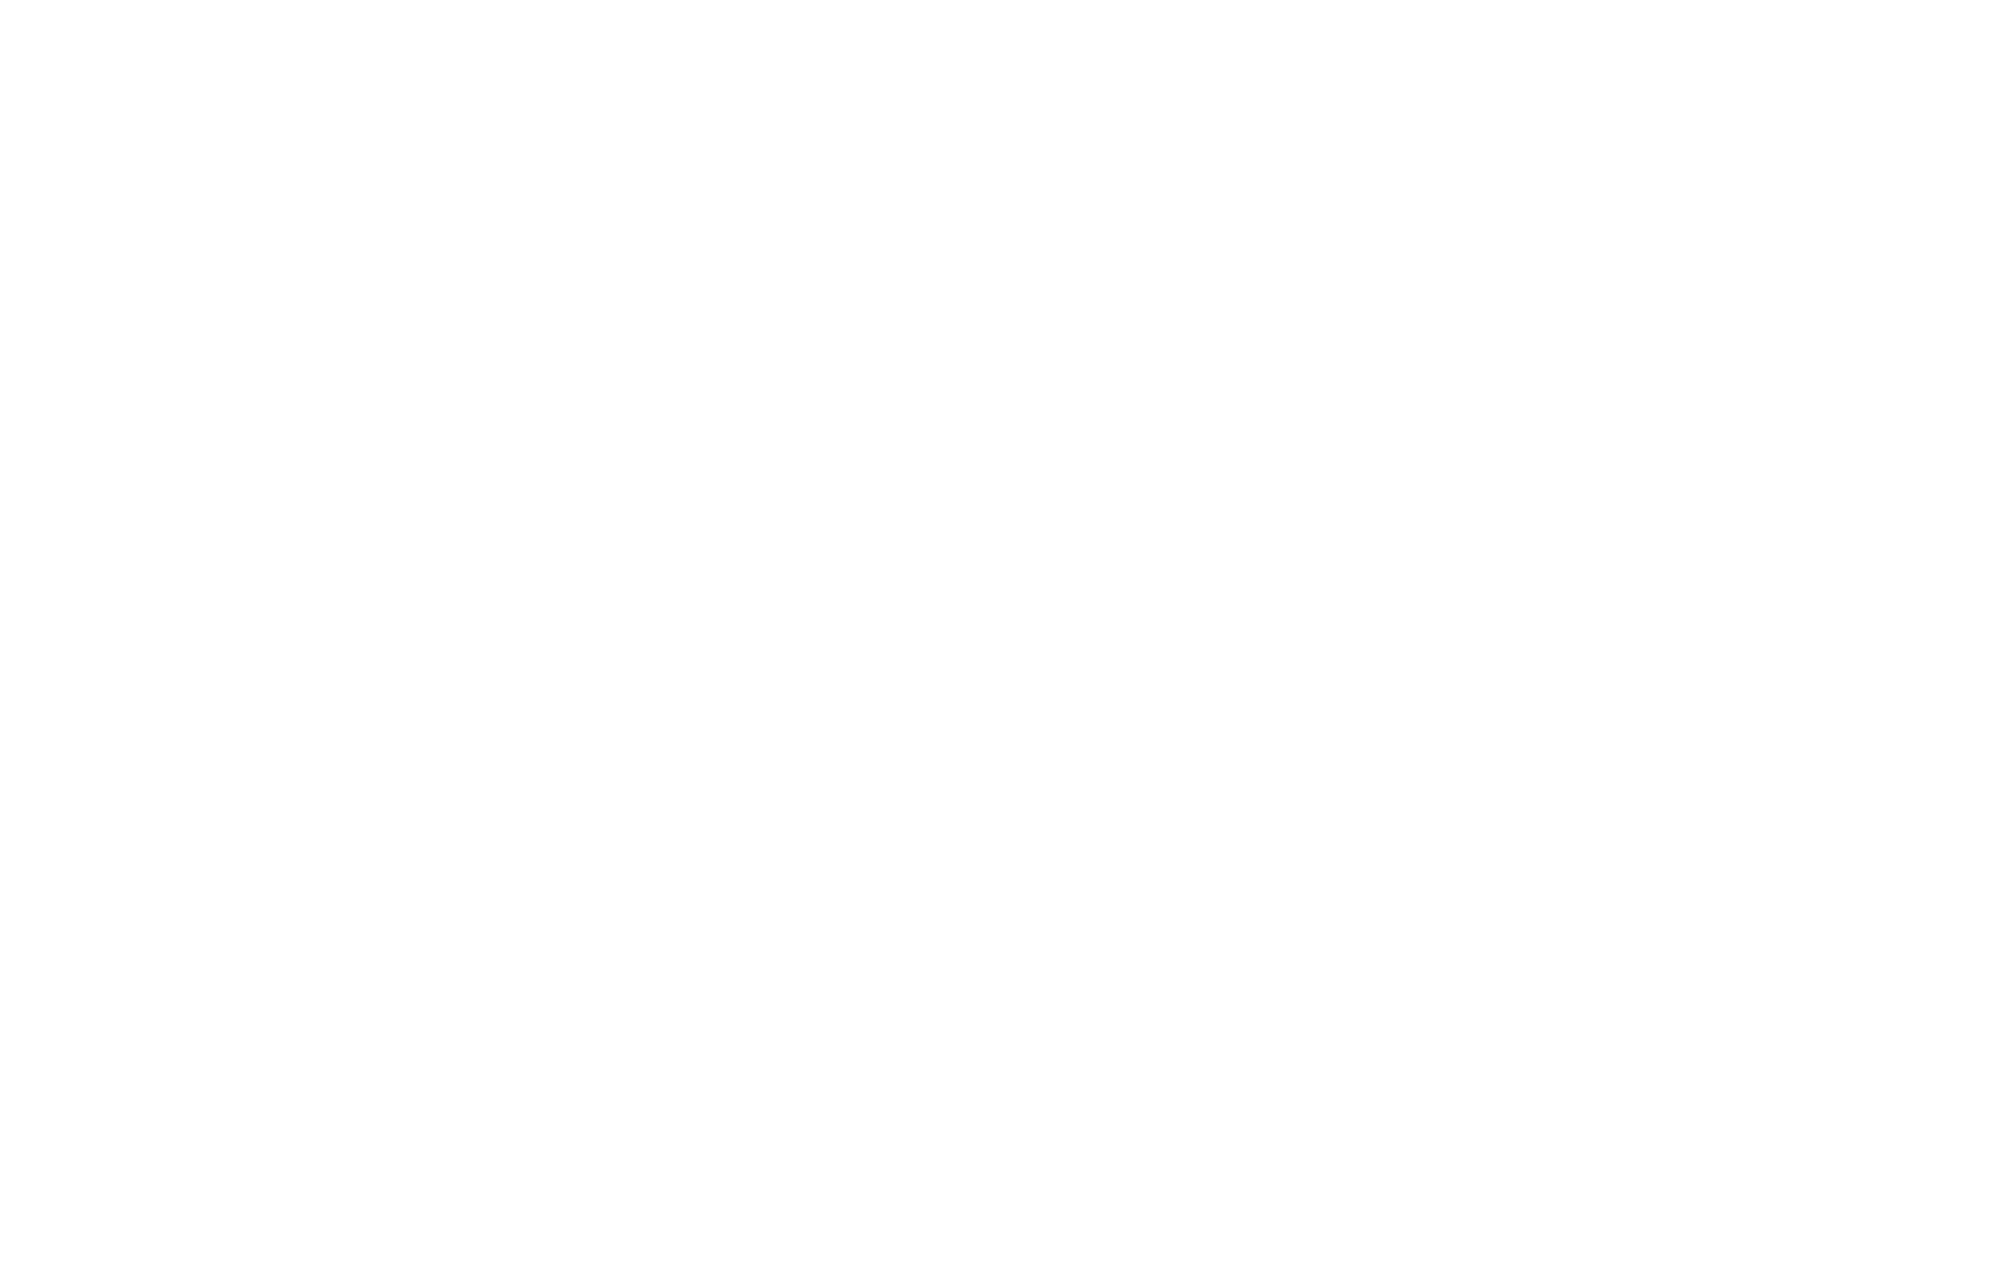 Cows clipart waste. Animal agriculture sheep and